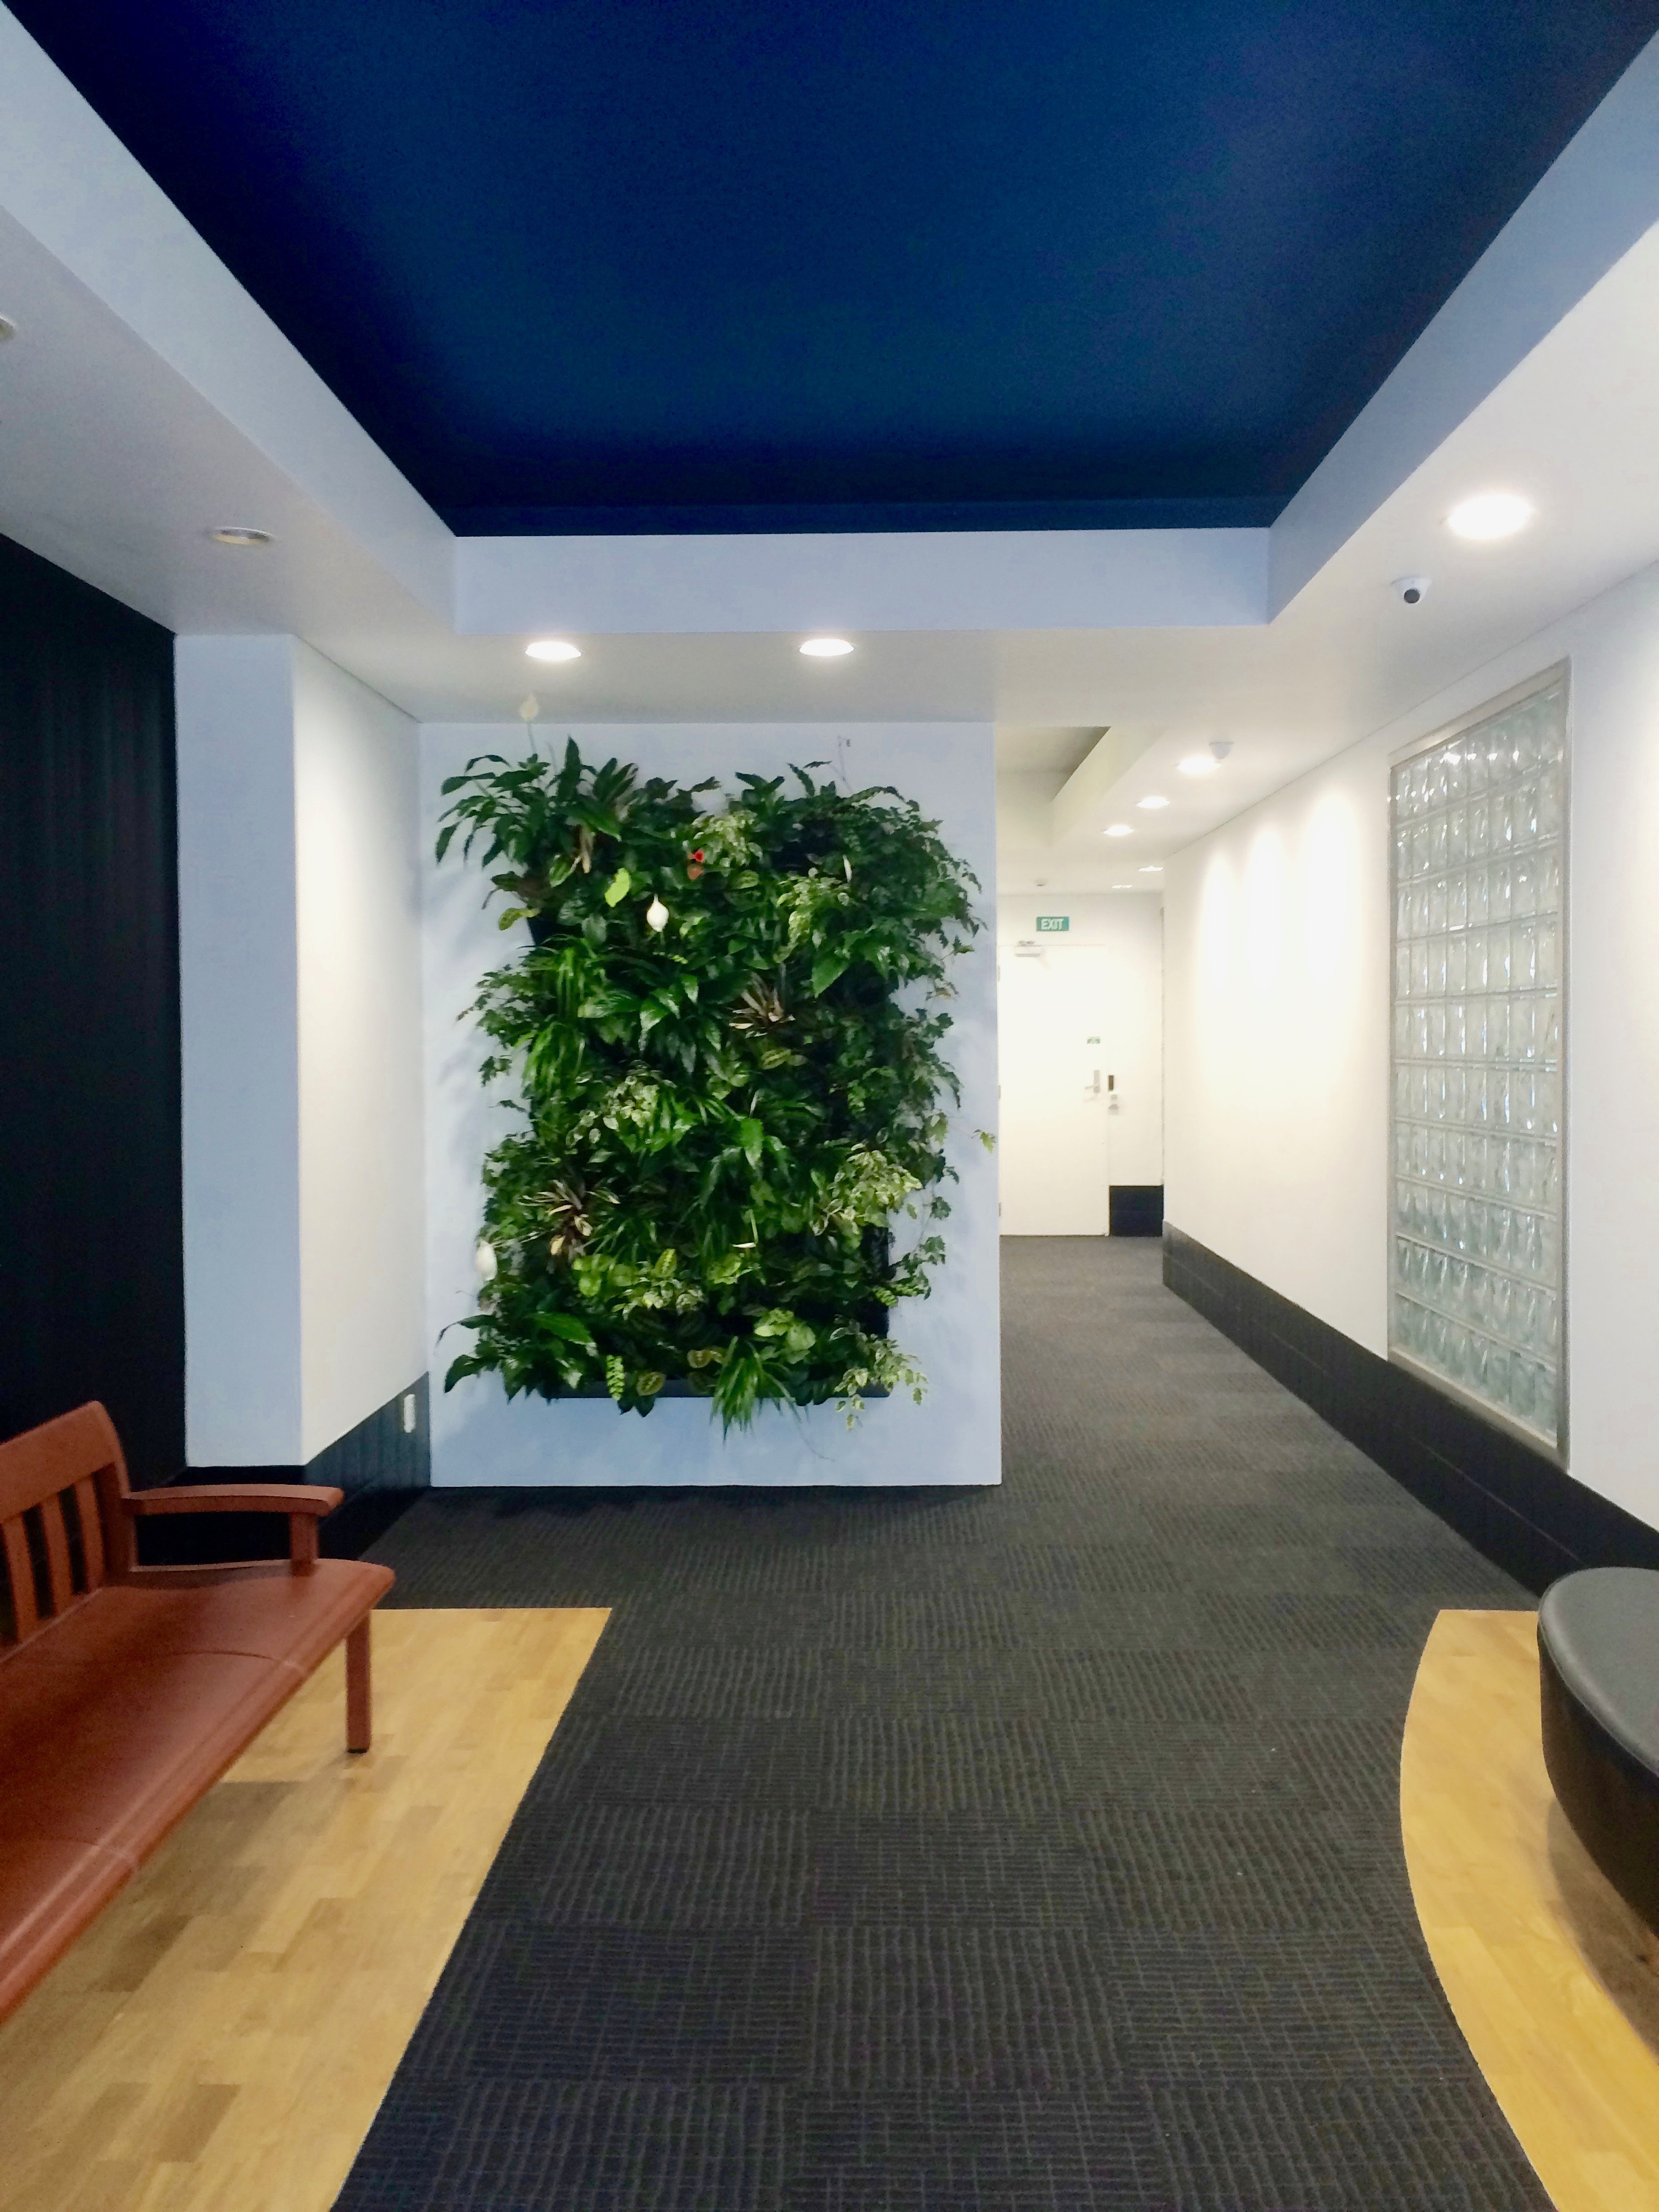 Incorporating nature into the Voyager lobby